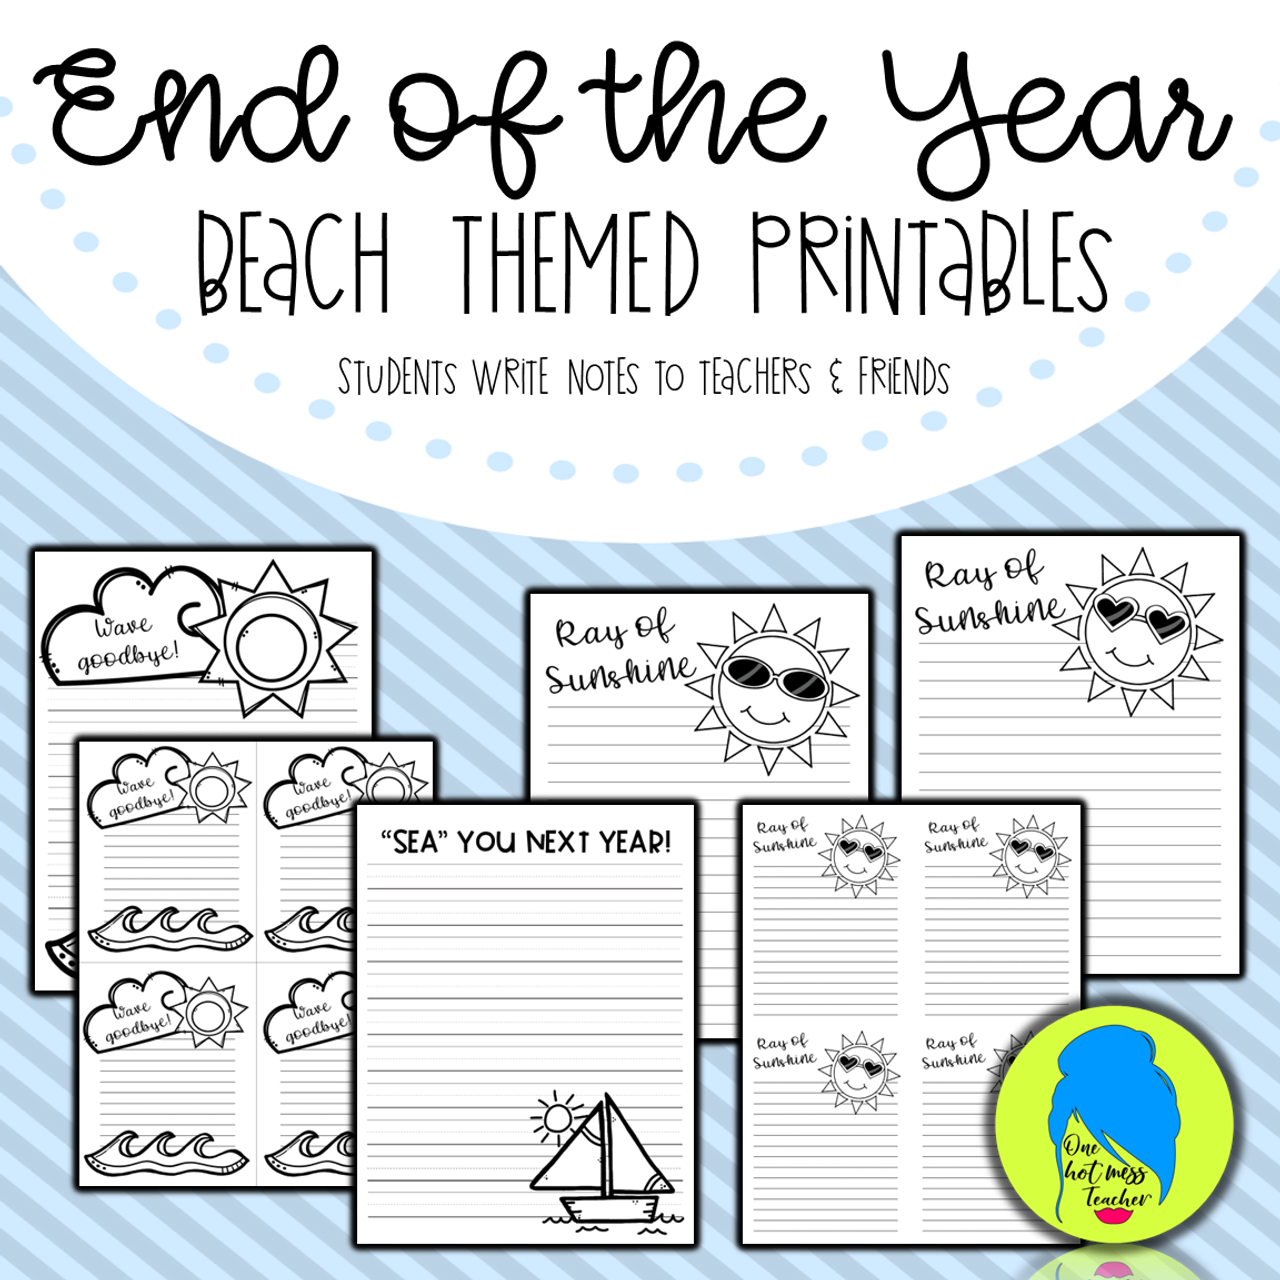 End of the Year Beach Themed Printables